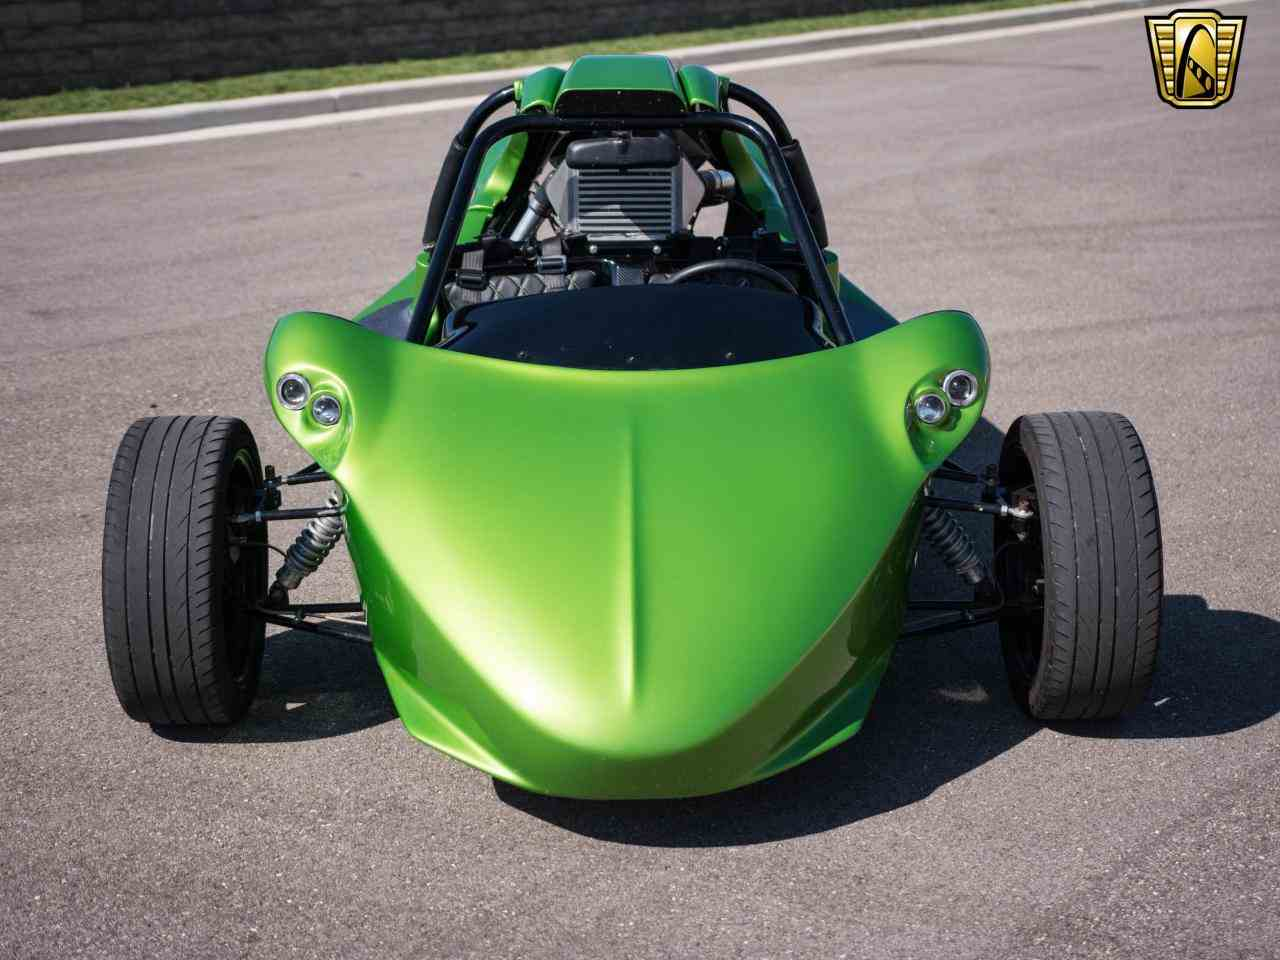 Large Picture of '08 Kawasaki T-Rex Replica Offered by Gateway Classic Cars - Milwaukee - L7NA